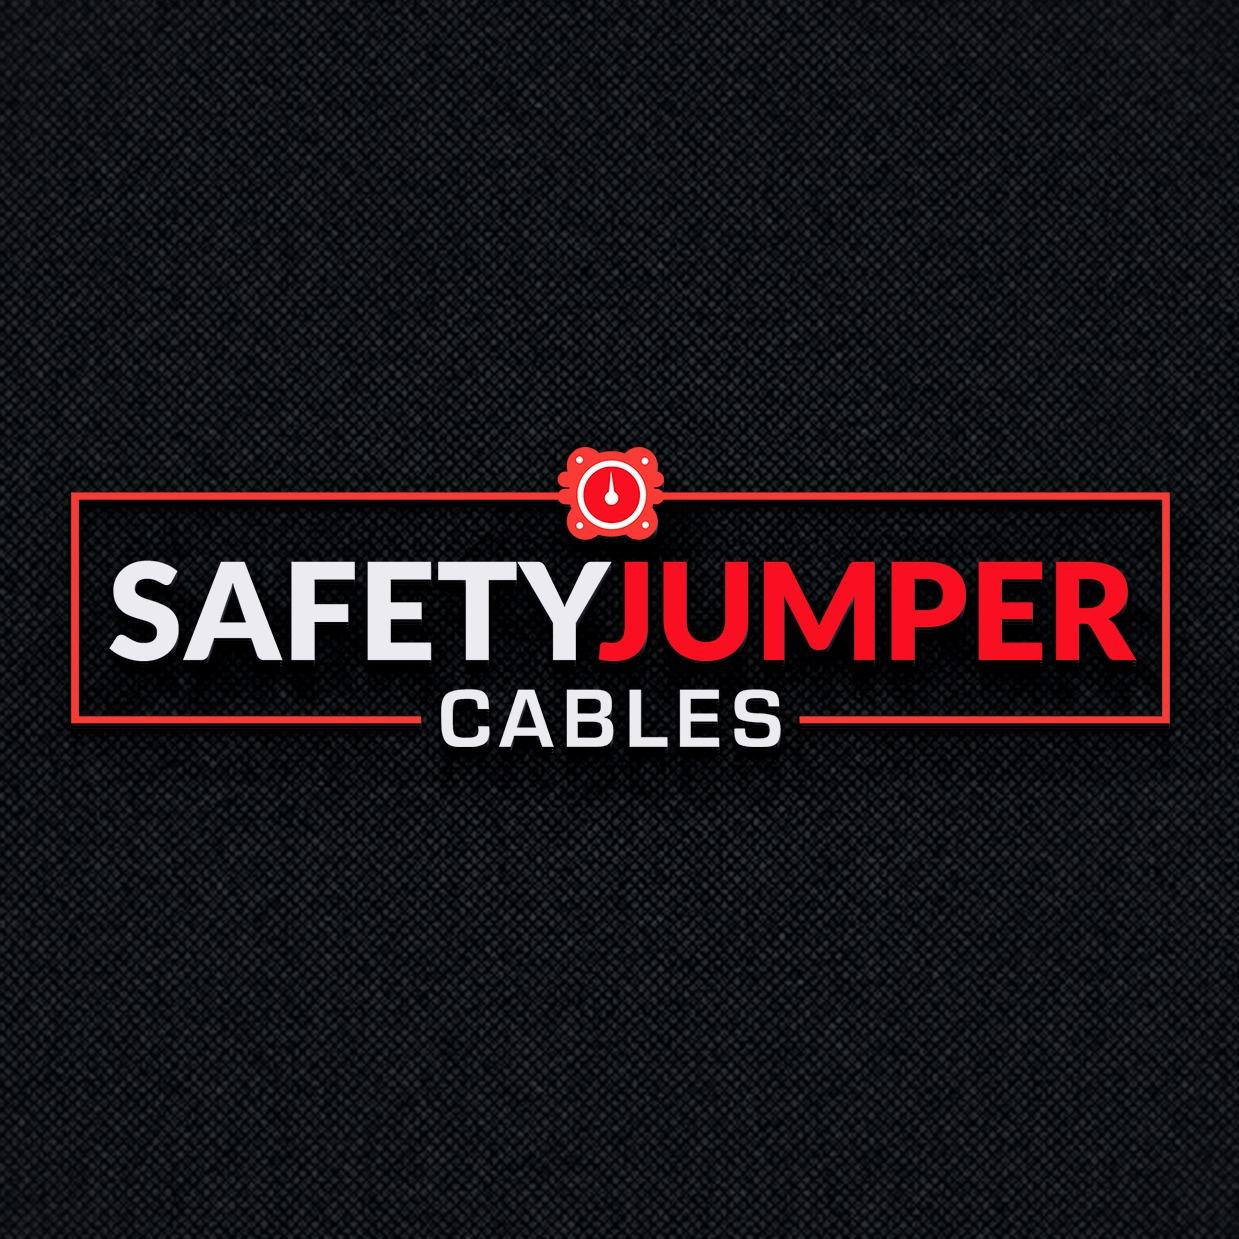 Safety Jumper Cables, Lewisville Texas (TX